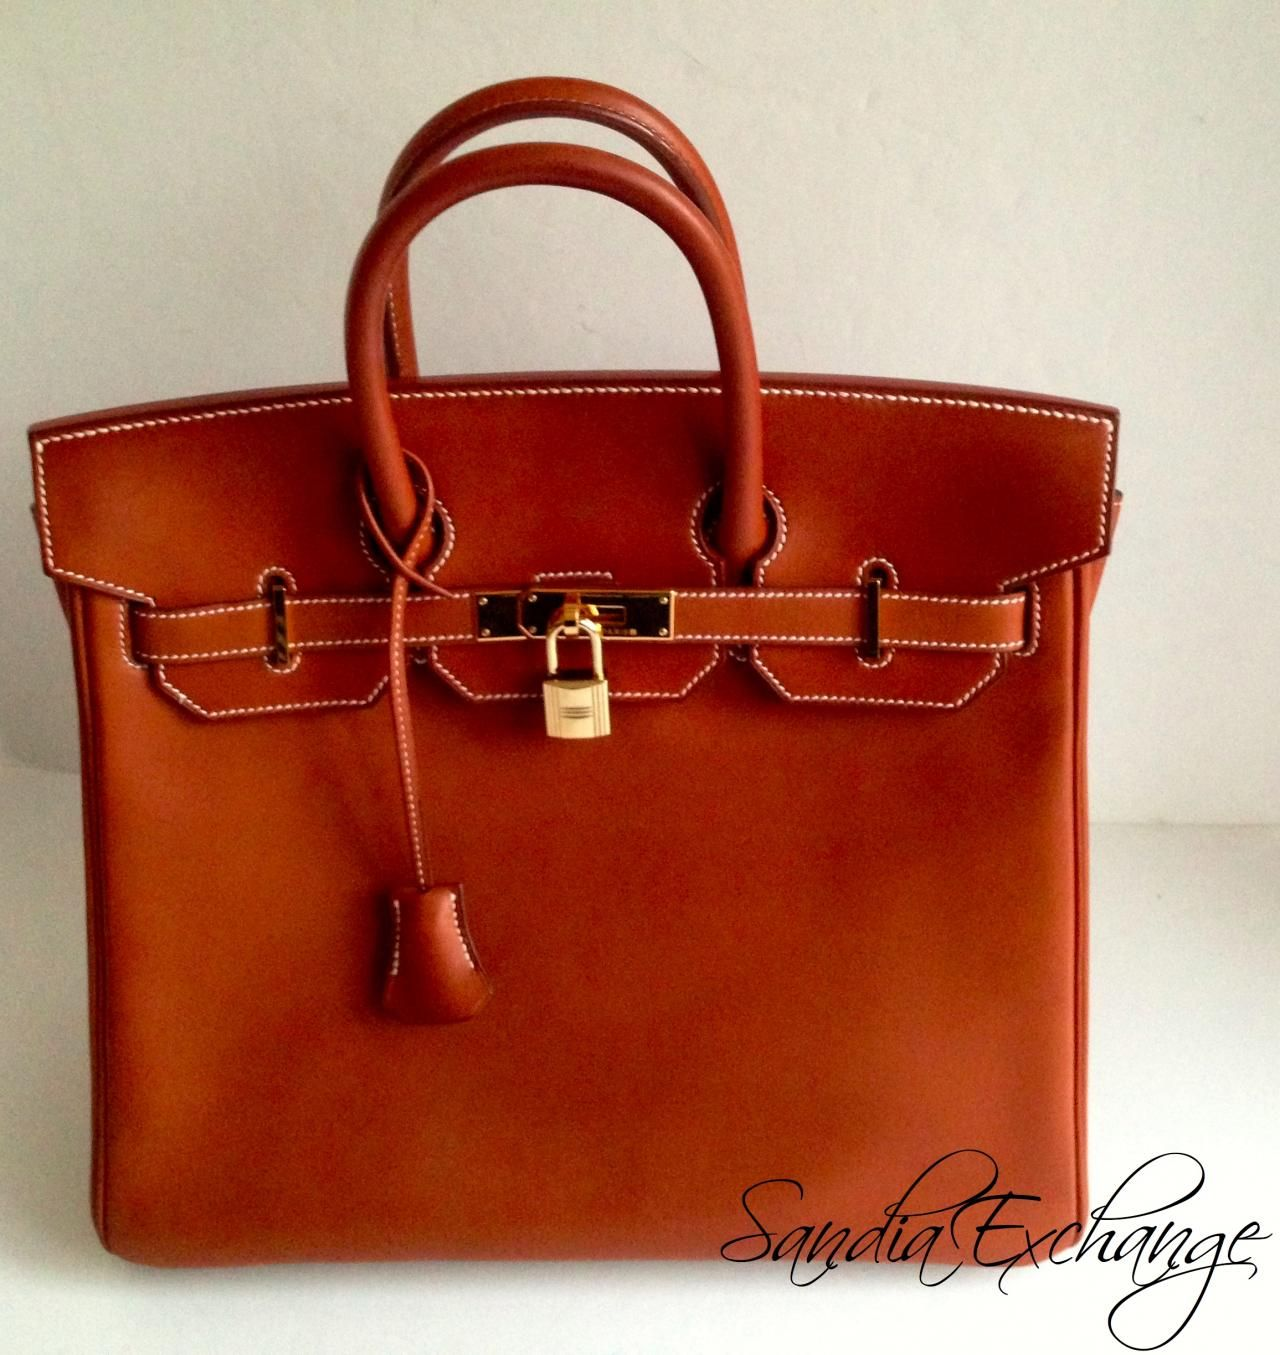 4d1678db65 HERMES HAC 32 cm Barenia Birkin Fauve Gold Hardware Authentic HERMÈS -  Images hosted at BiggerBids.com